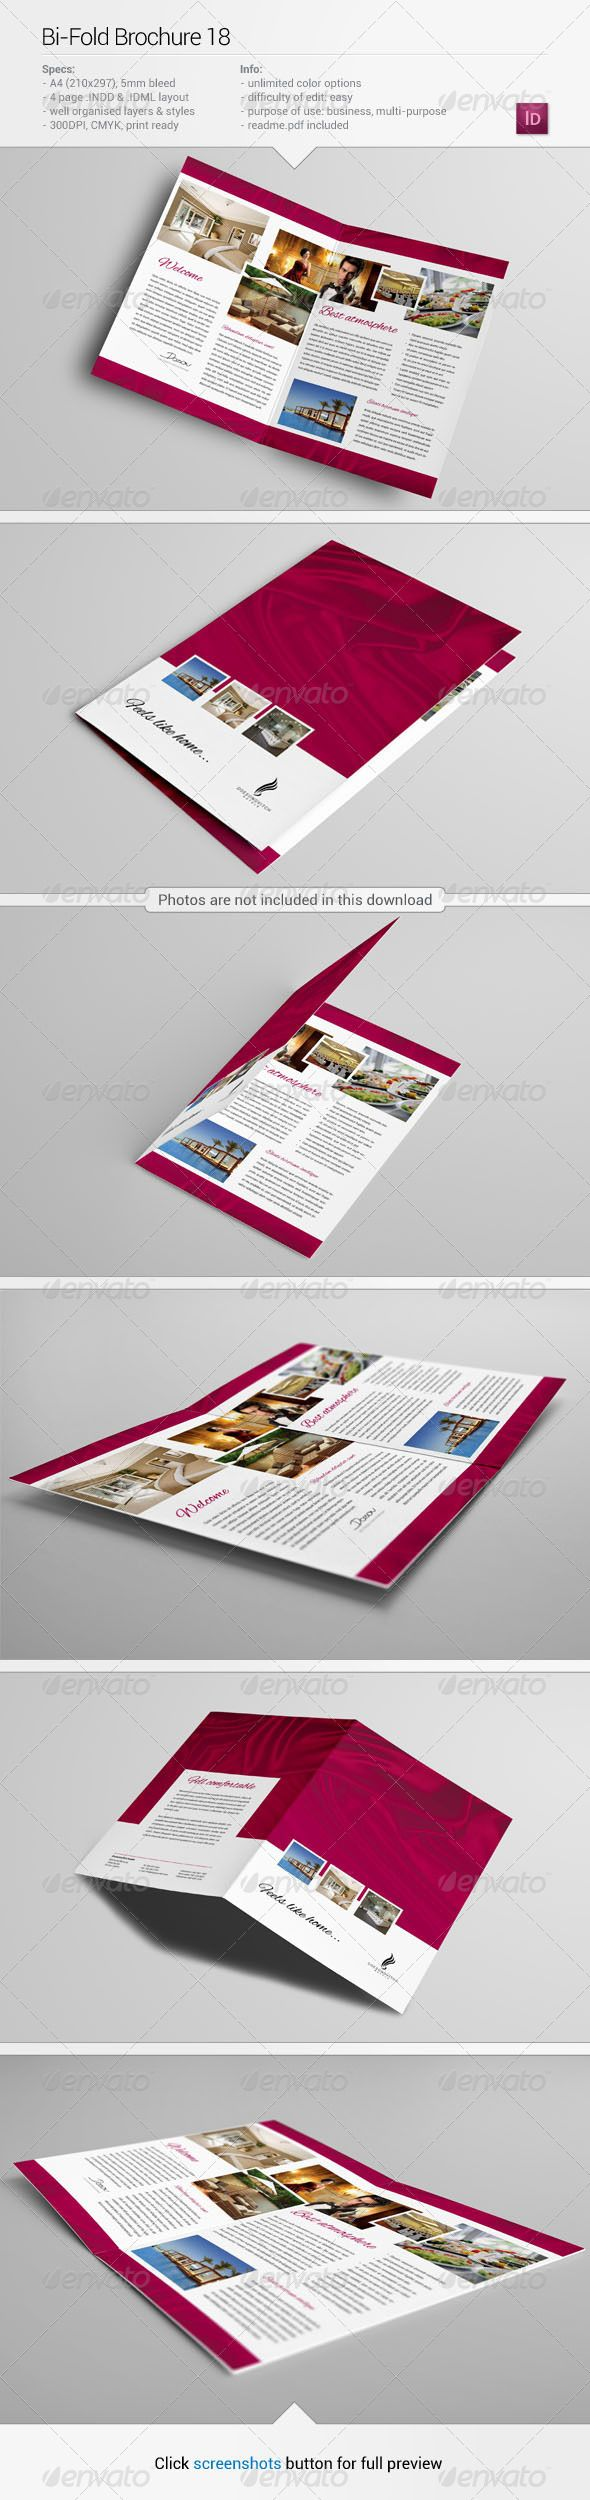 Bi-Fold Brochure 18 by Demorfoza                                                                                                     About this item Specification